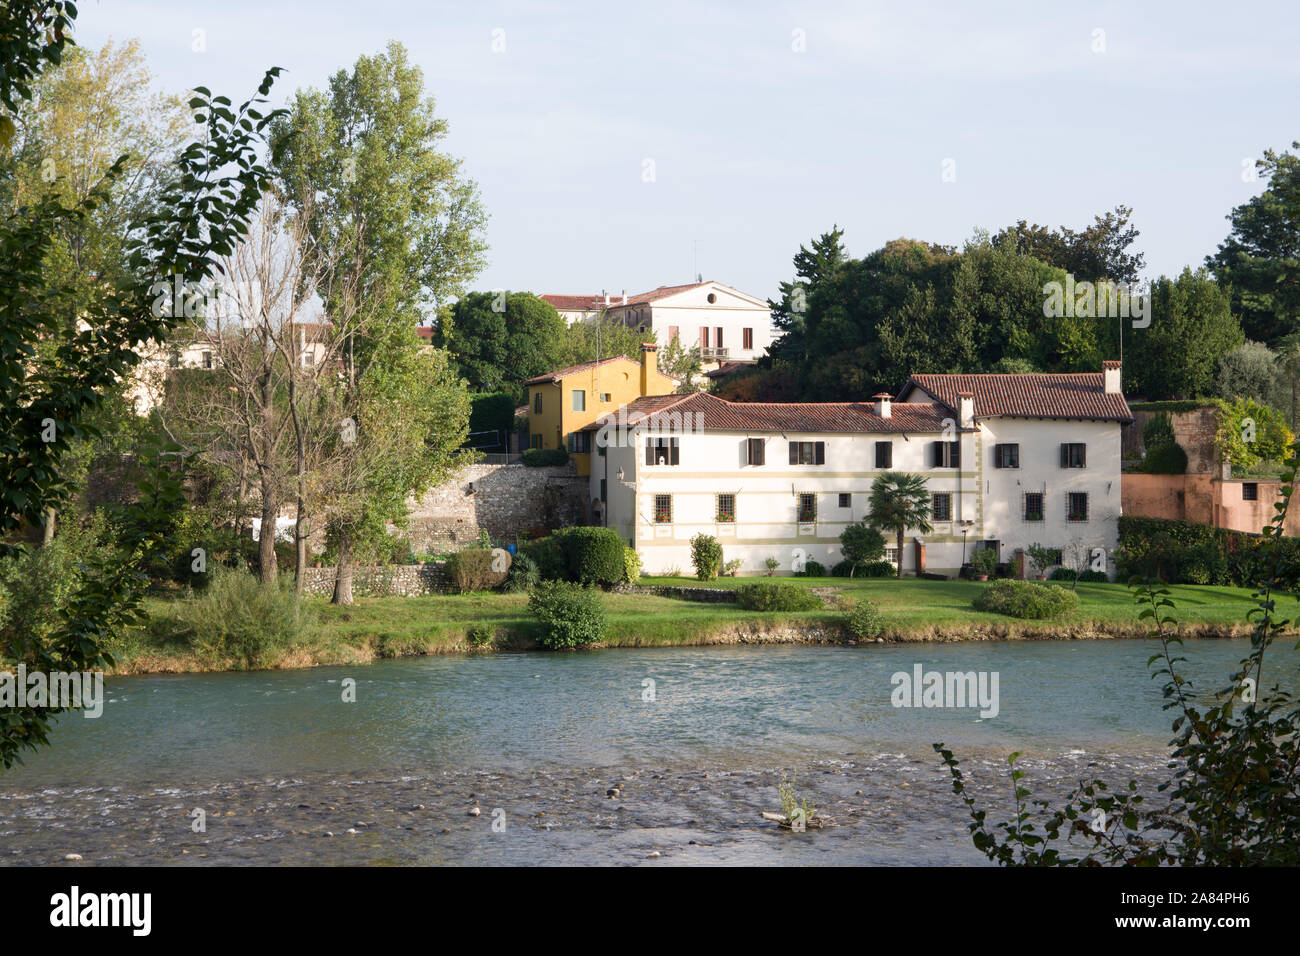 Bassano del Grappa, Italy, 10/22/2019 , view of the buildings on the east side of brenta river in Bassano del grappa. Stock Photo